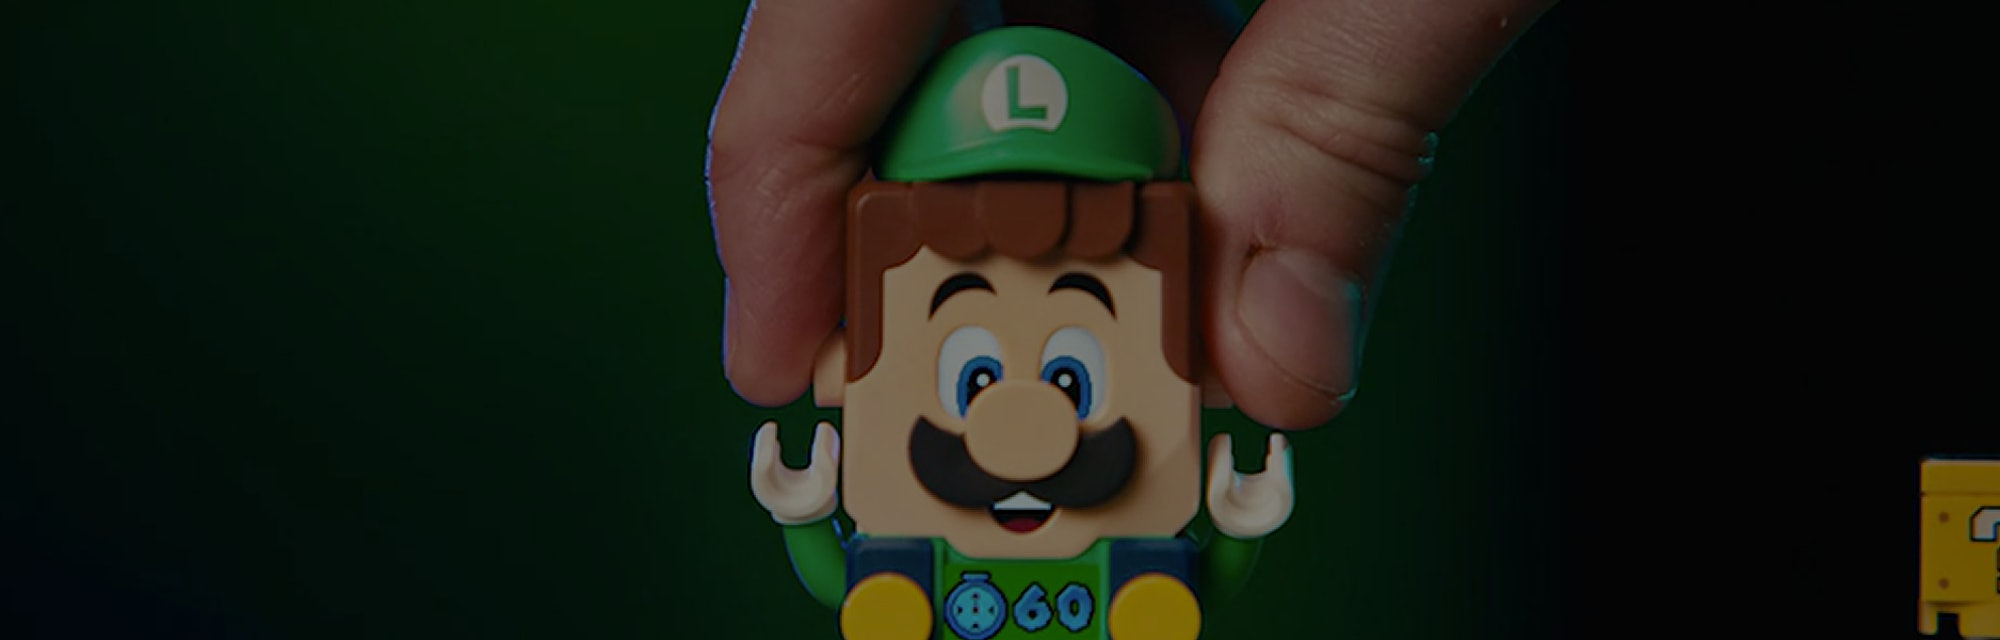 LEGO Super Mario is now available in a starter pack featuring Luigi.